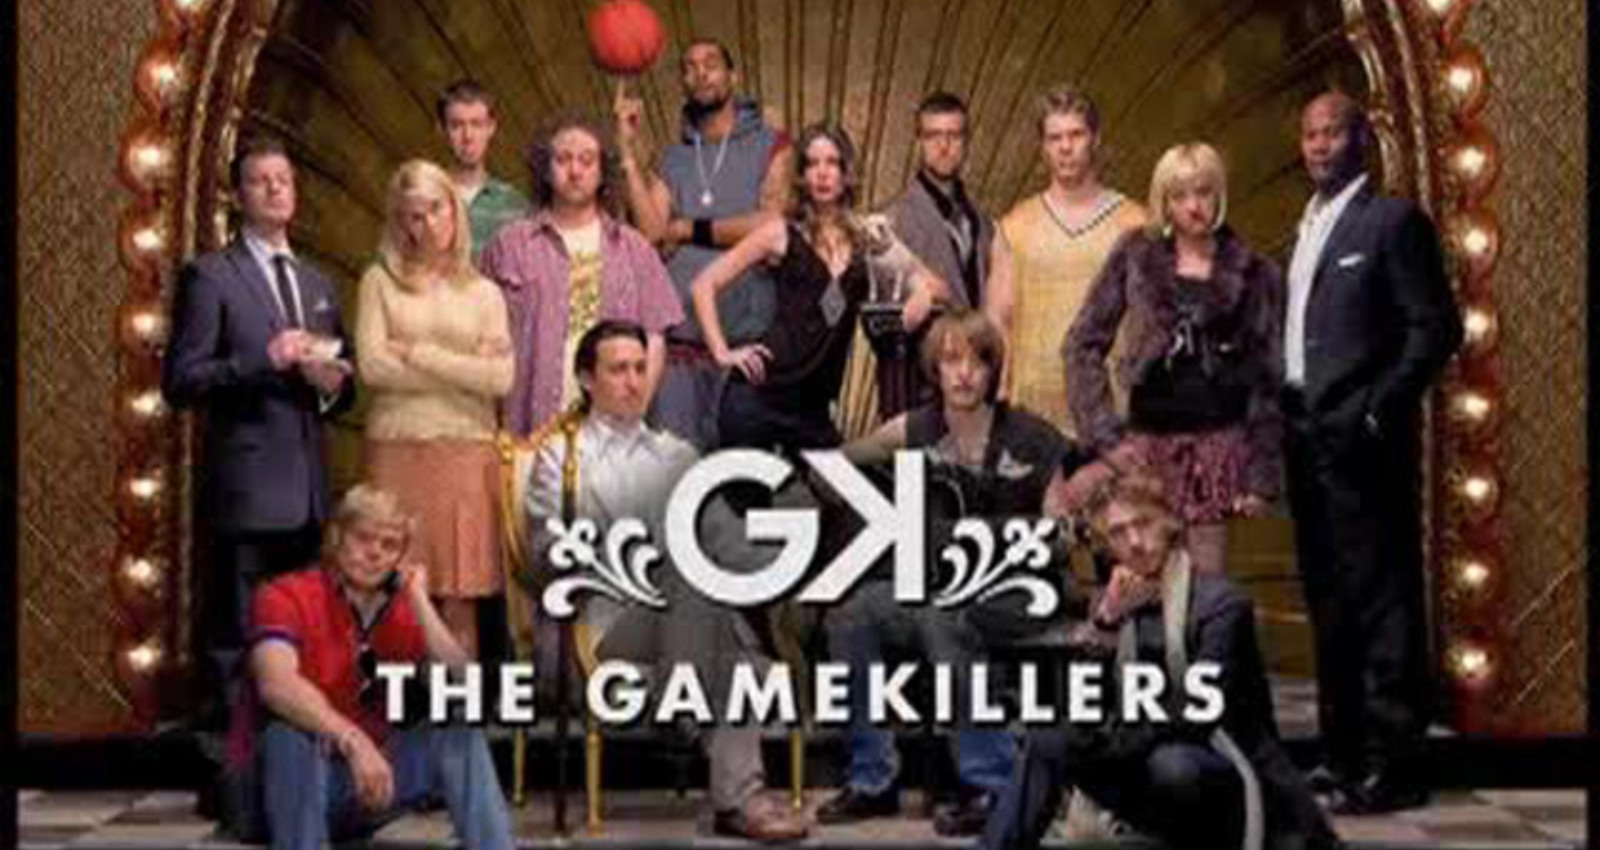 The Gamekillers Campaign